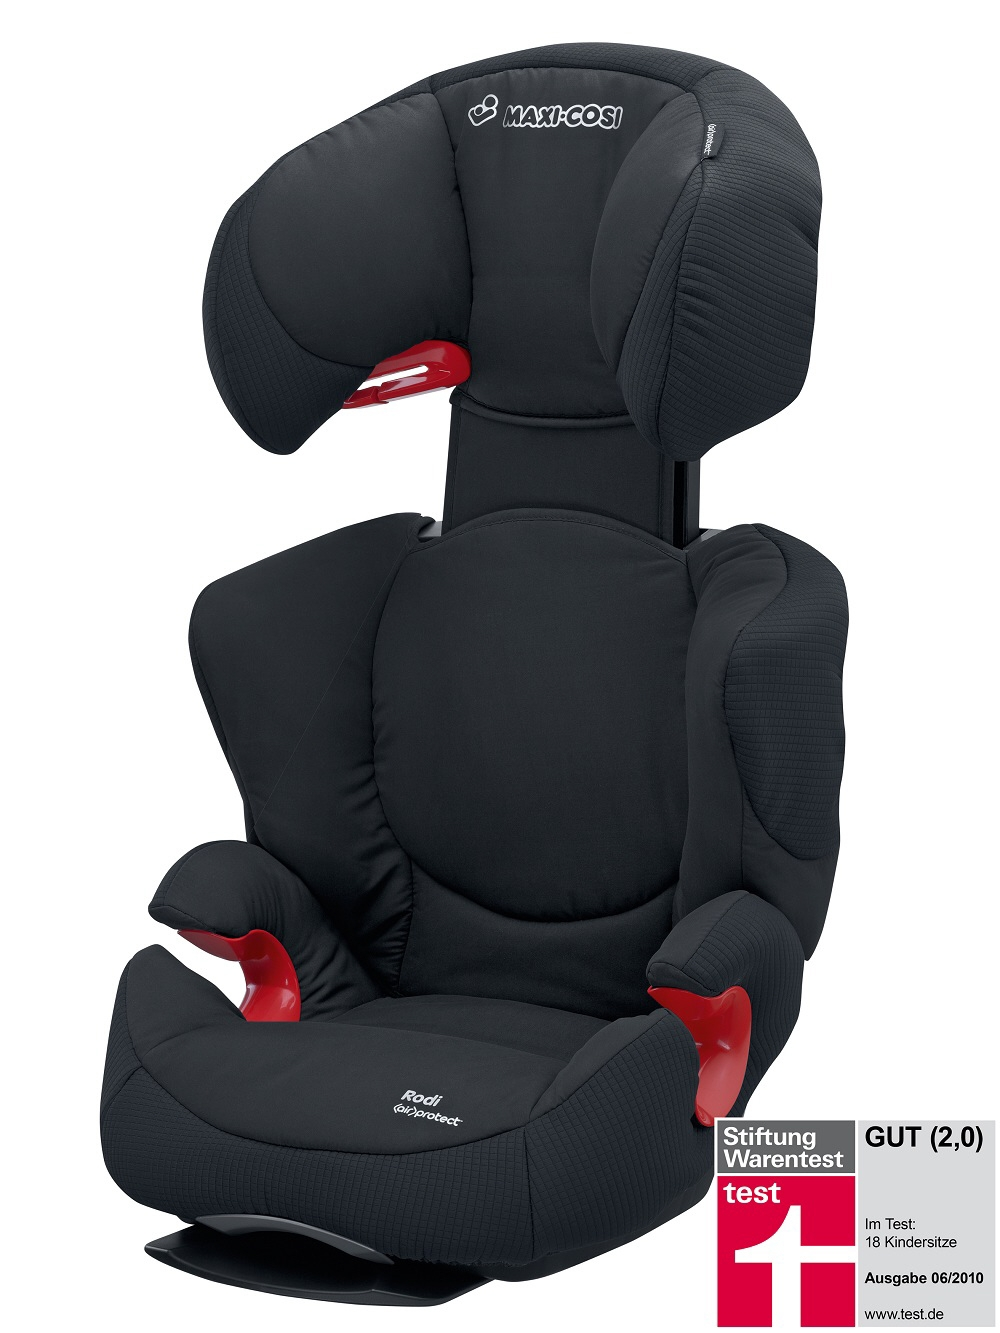 maxi cosi child car seat rodi air protect 2014 total black. Black Bedroom Furniture Sets. Home Design Ideas